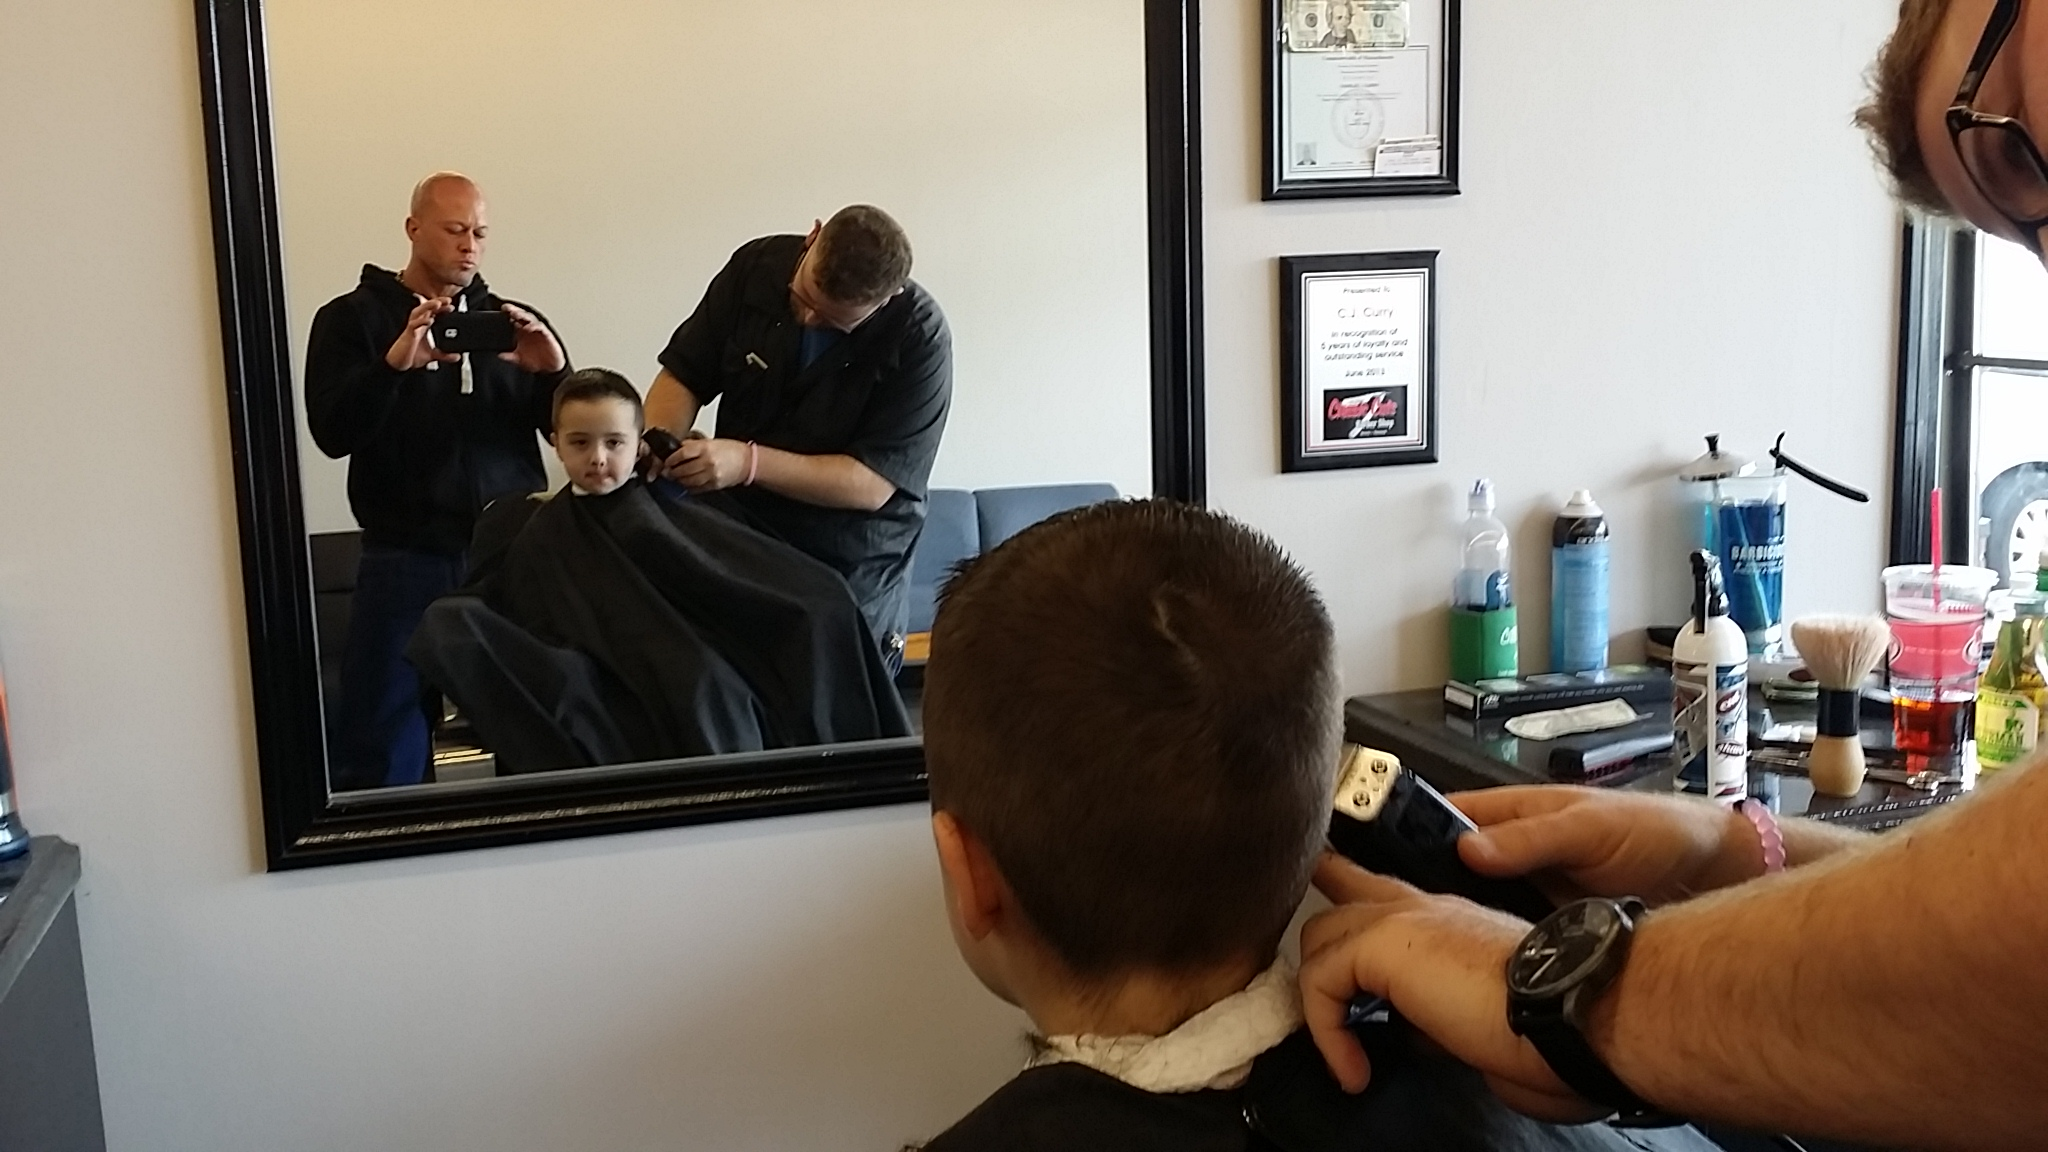 "John Quinlan with Son Cole @ Classic Cuts Barbershop Wakefield. MA. with Barber CJ Curry via Halloween 2015 ""Nice job CJ, my son thinks your the greatest barber. I appreciated you and your staff being so great to my children"" God Bless, - John Quinlan 11/2/2015 #JohnQuinlan"